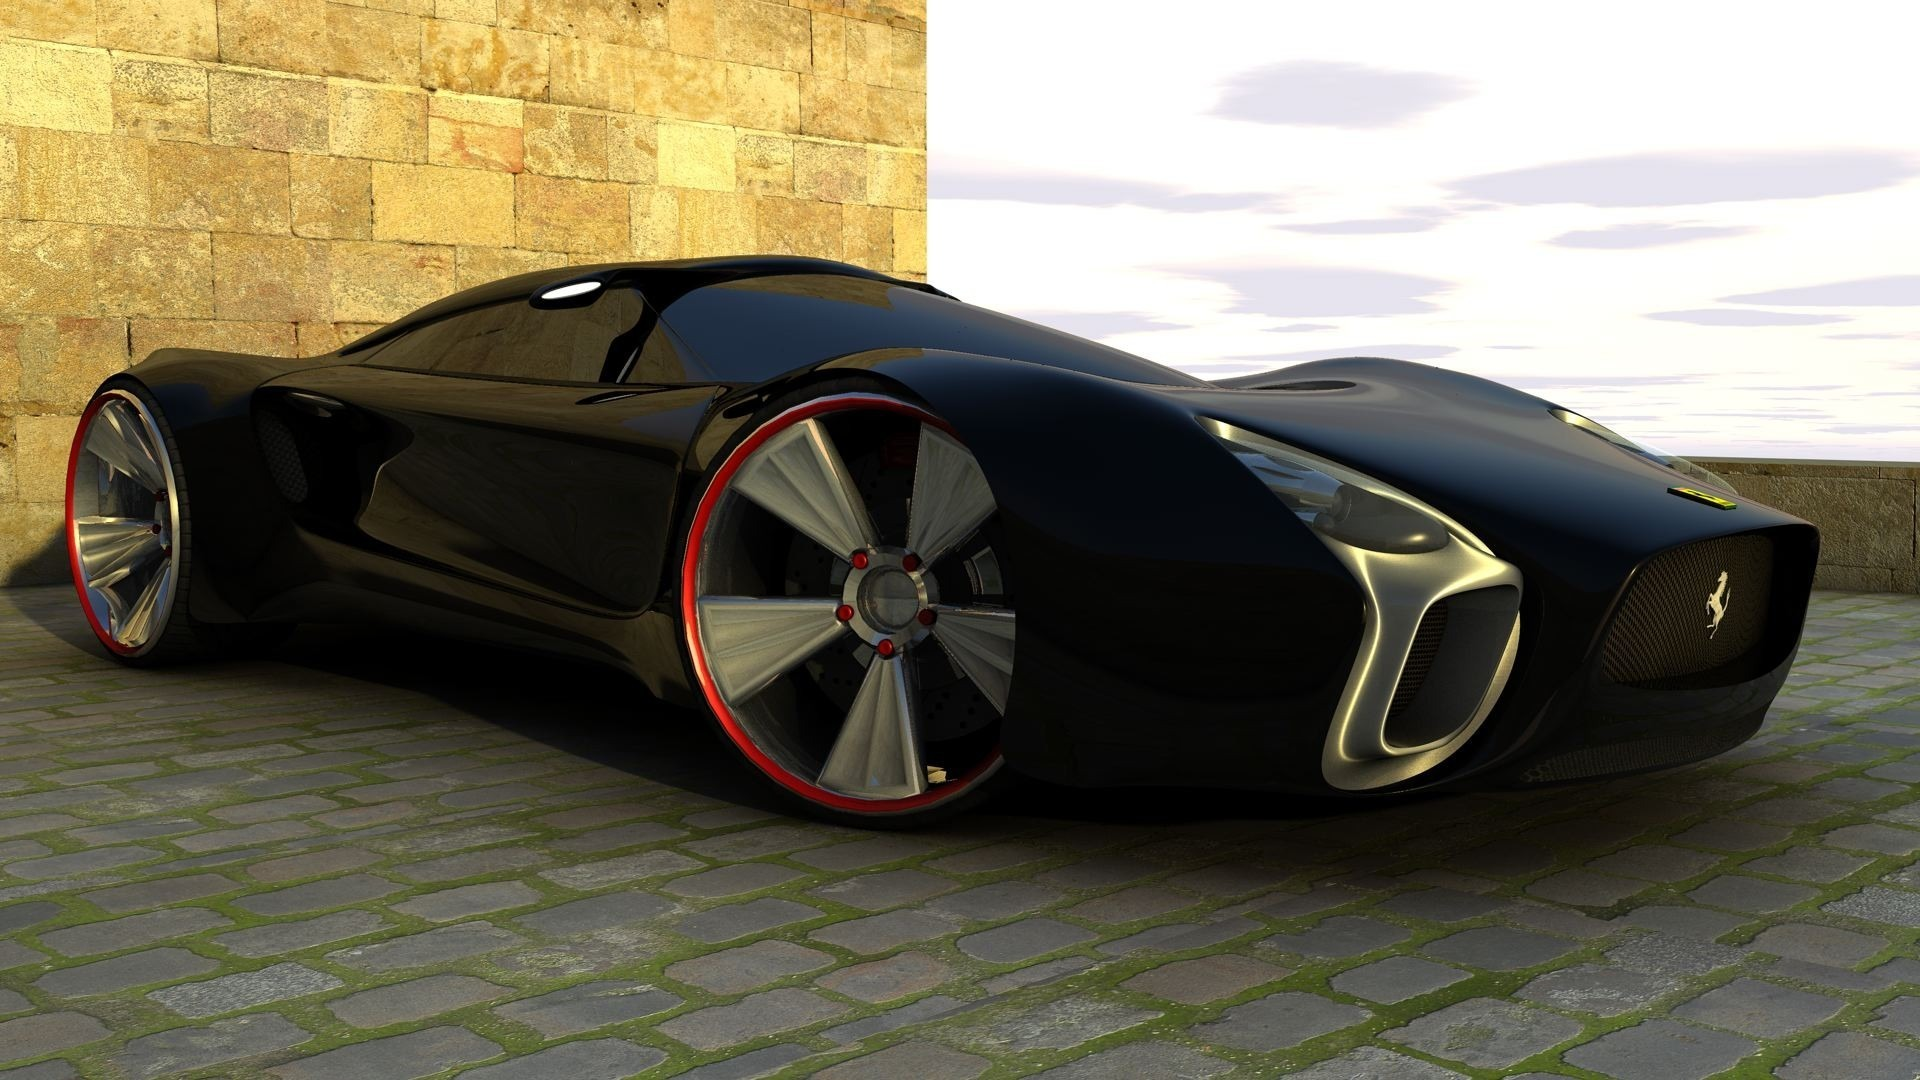 Concept Car Perfect For Your Wallpaper 1920x1080 Full HD Wallpapers 1920x1080